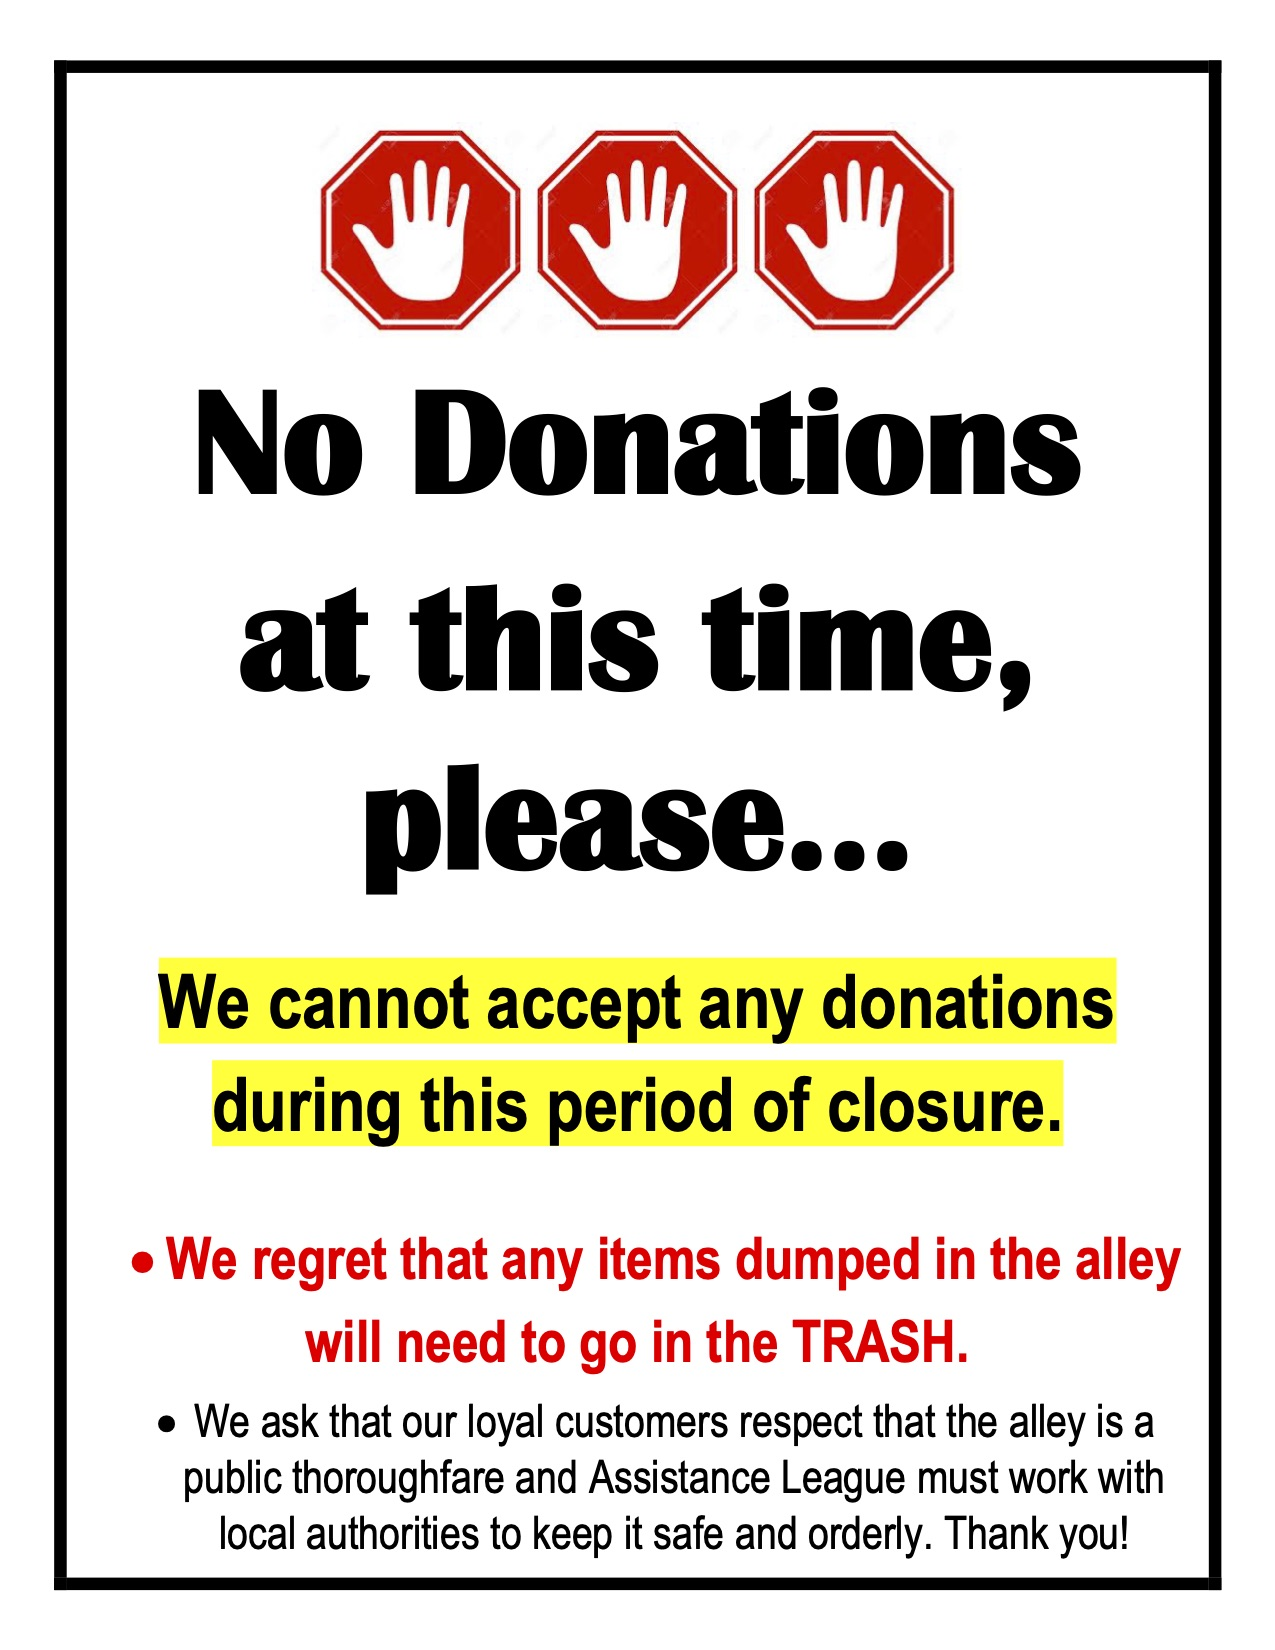 Thrift & Gift Shop unable to accept Donations at this time